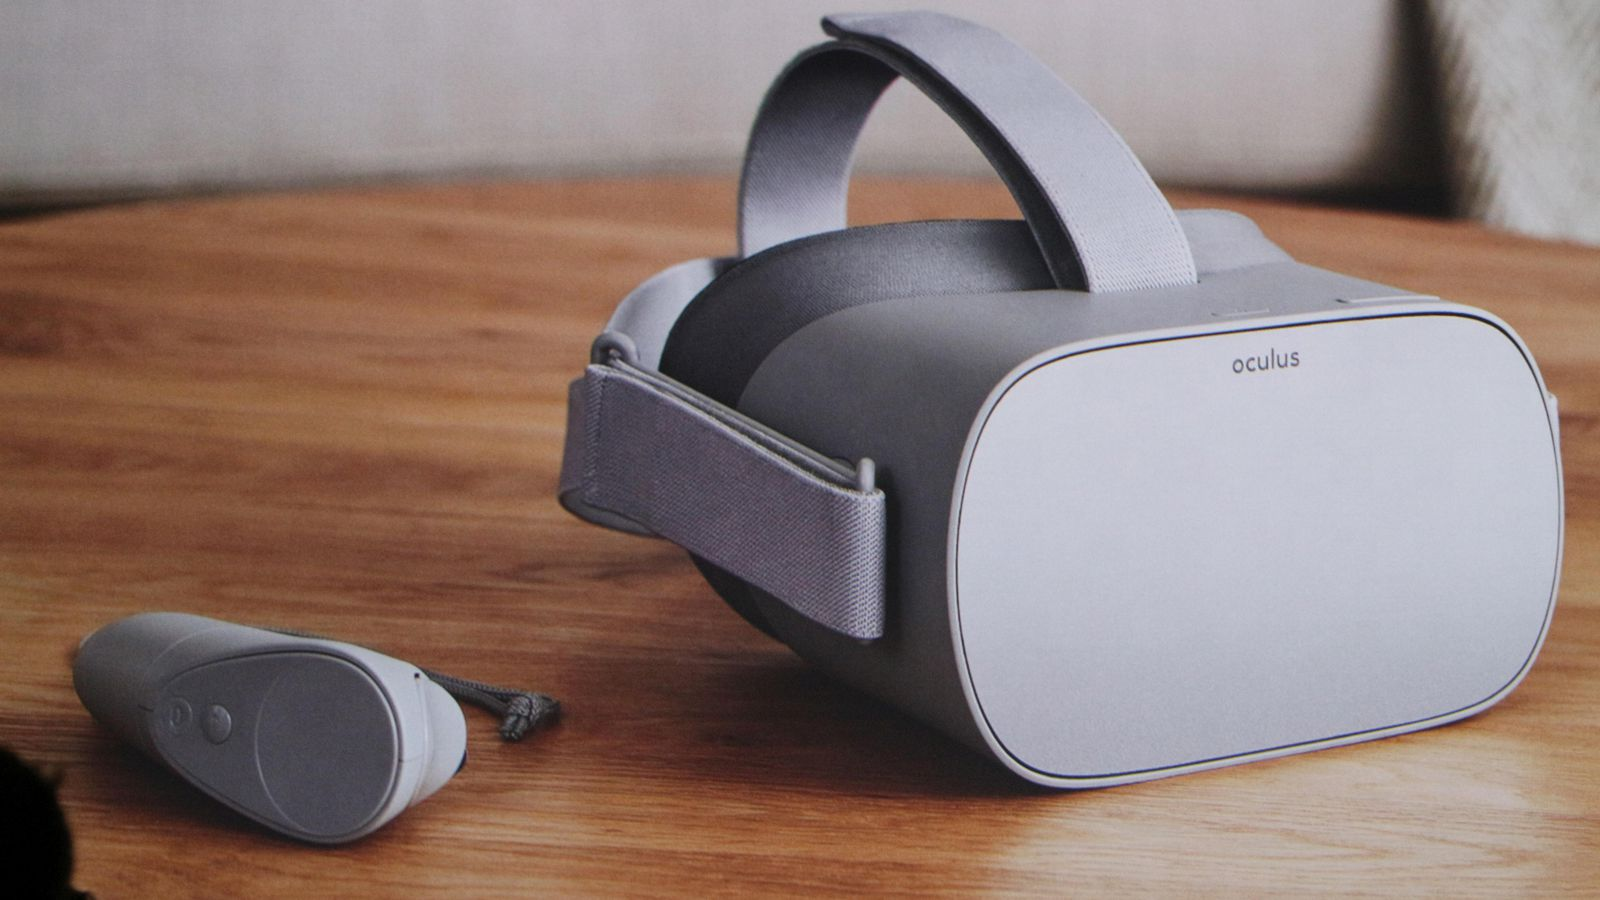 Facebook introduced a standalone VR headset Oculus Go